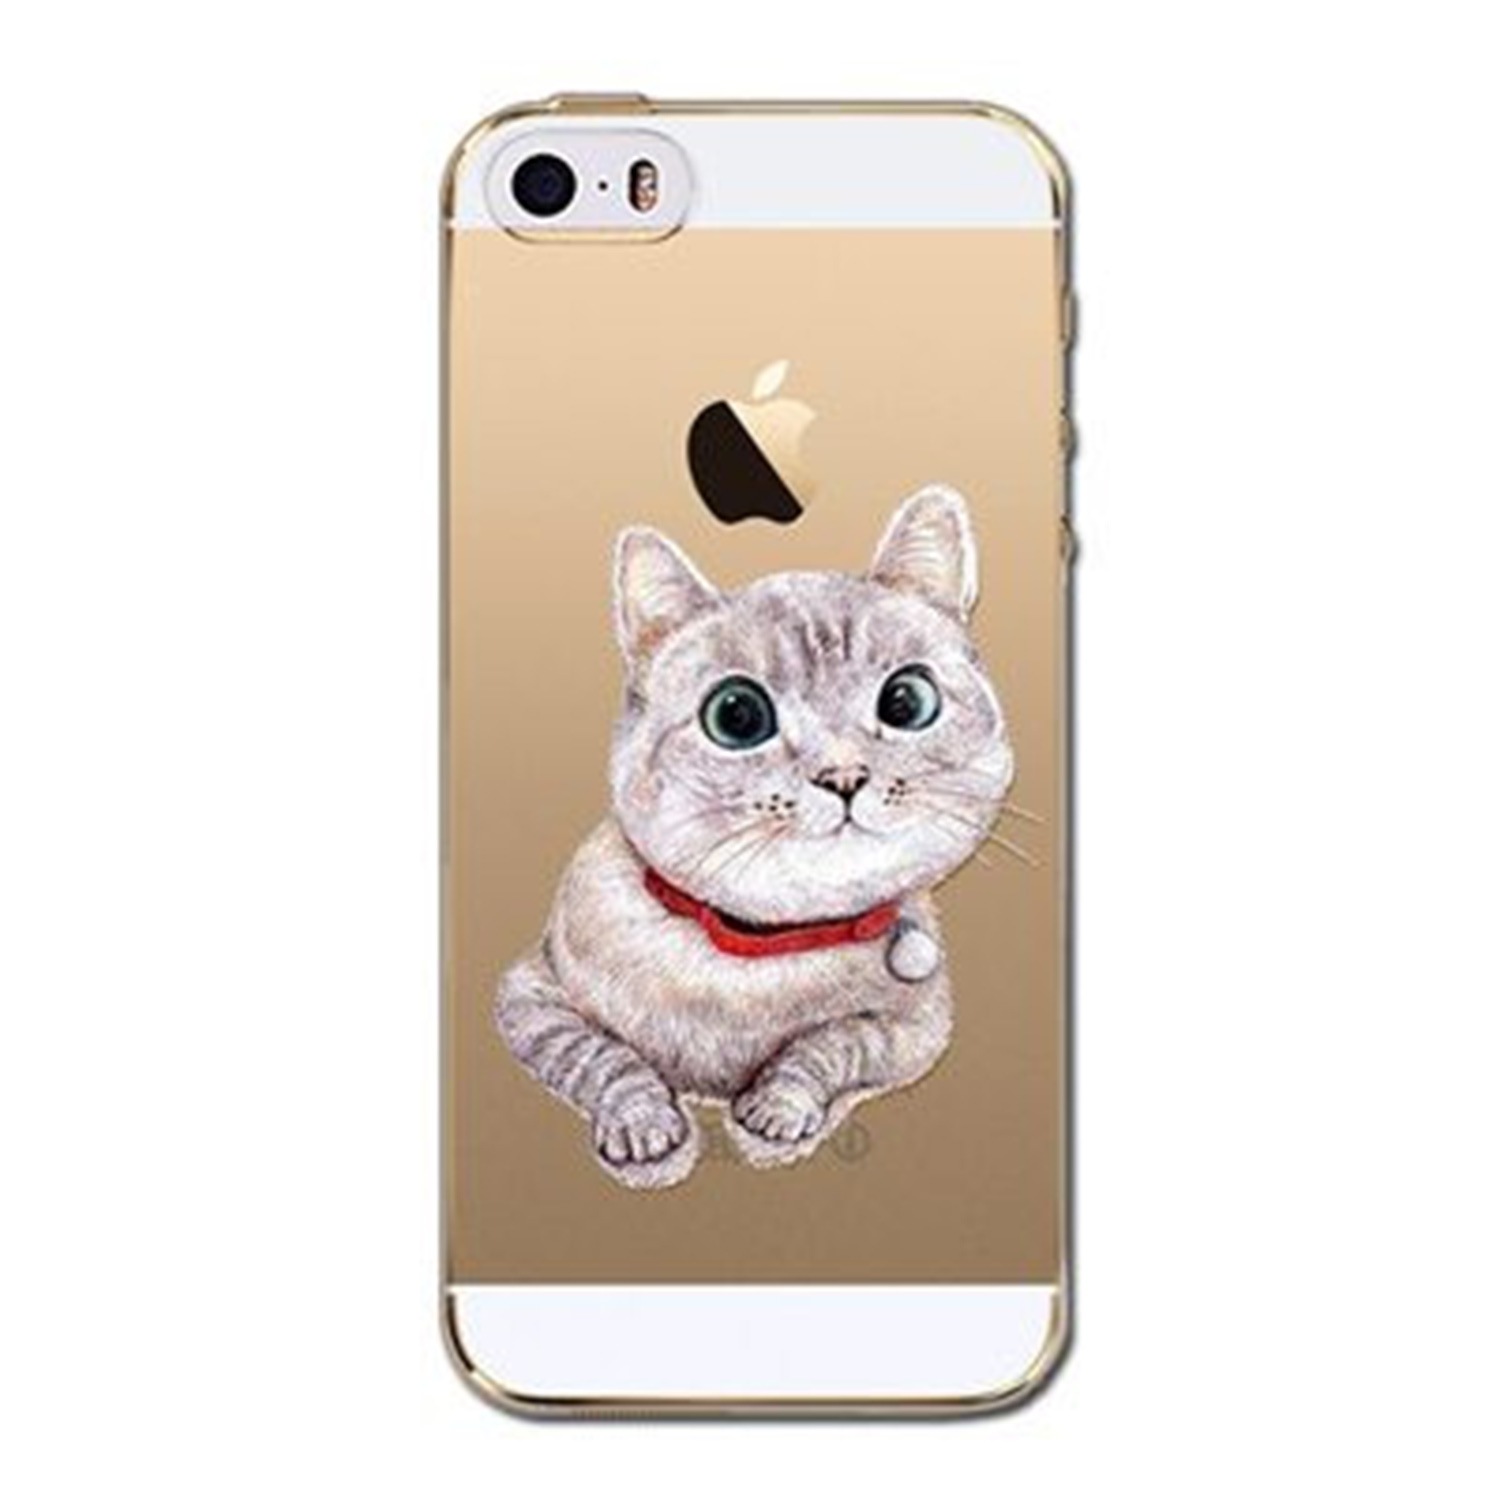 Kritzel Case iPhone 5s / SE - Kitty Collection #404